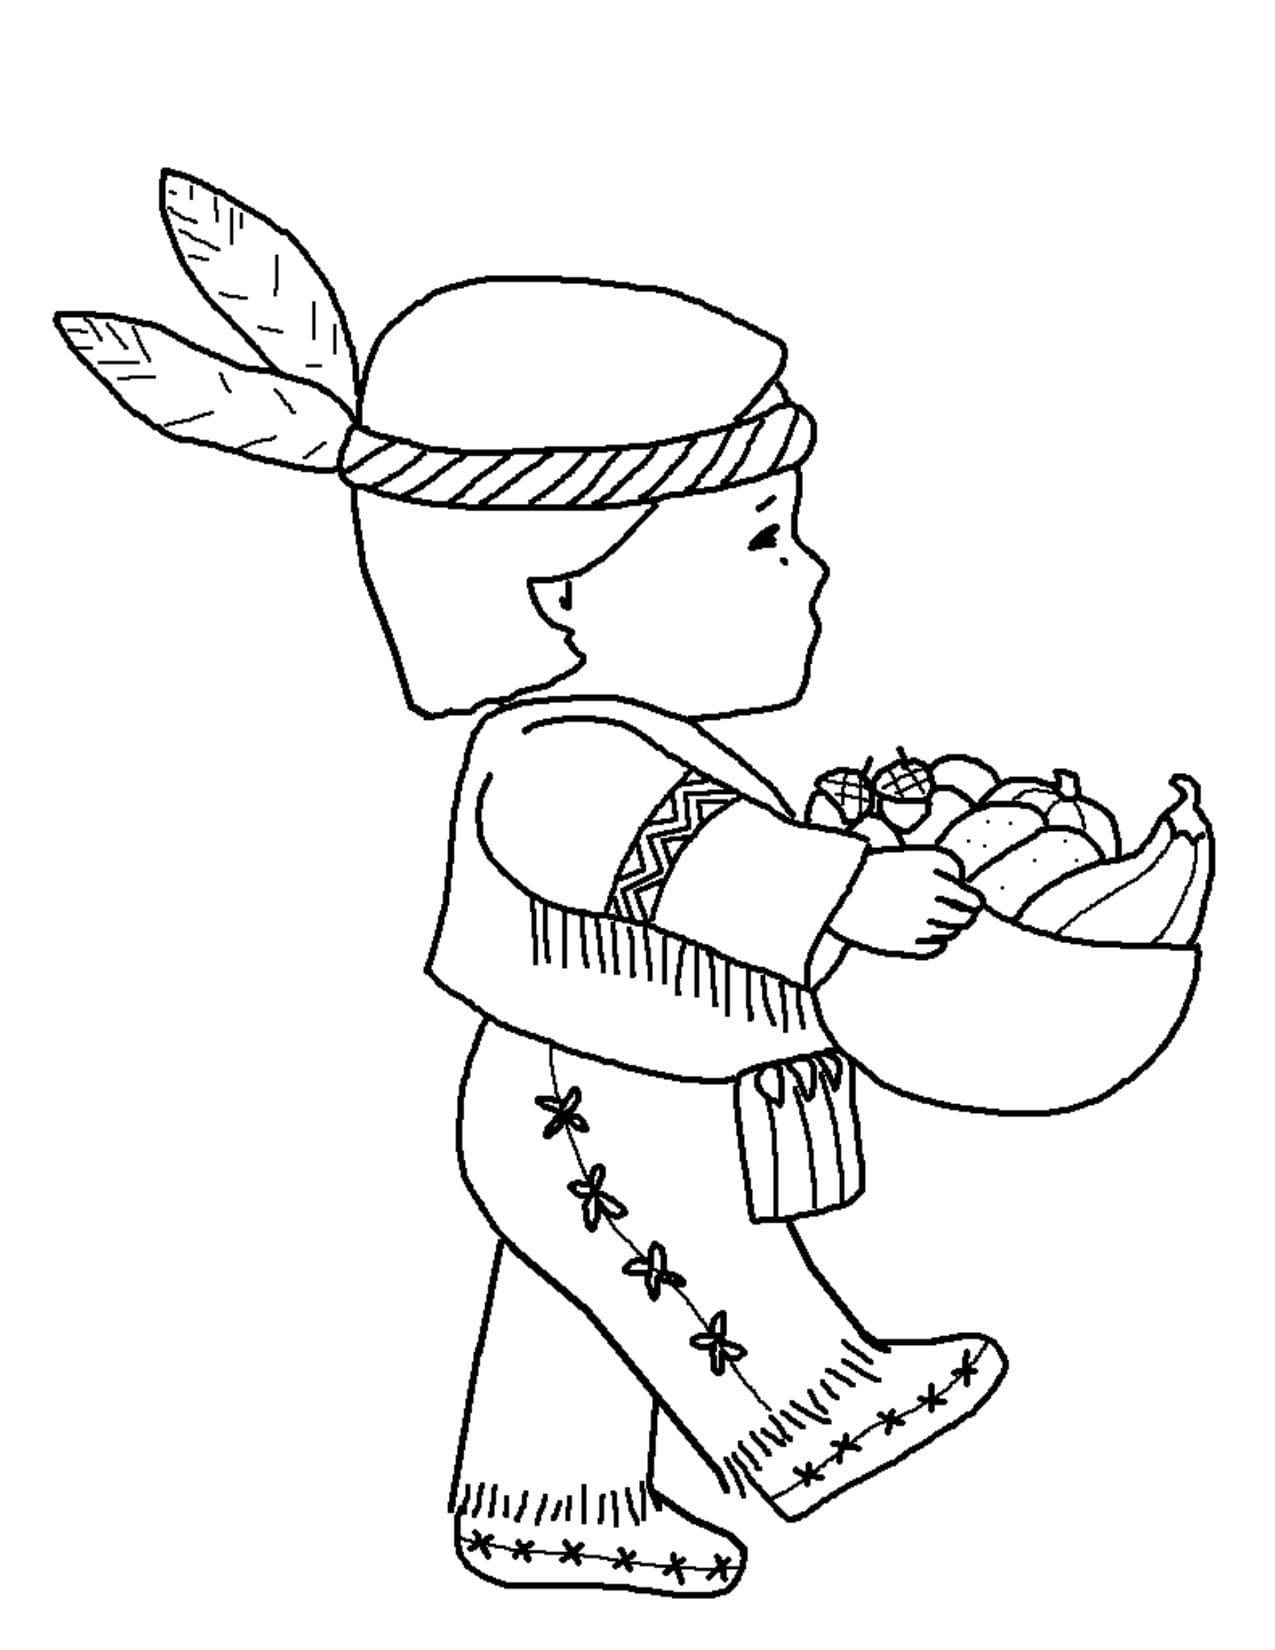 Thanksgiving Coloring Pages Download Or Print For Free